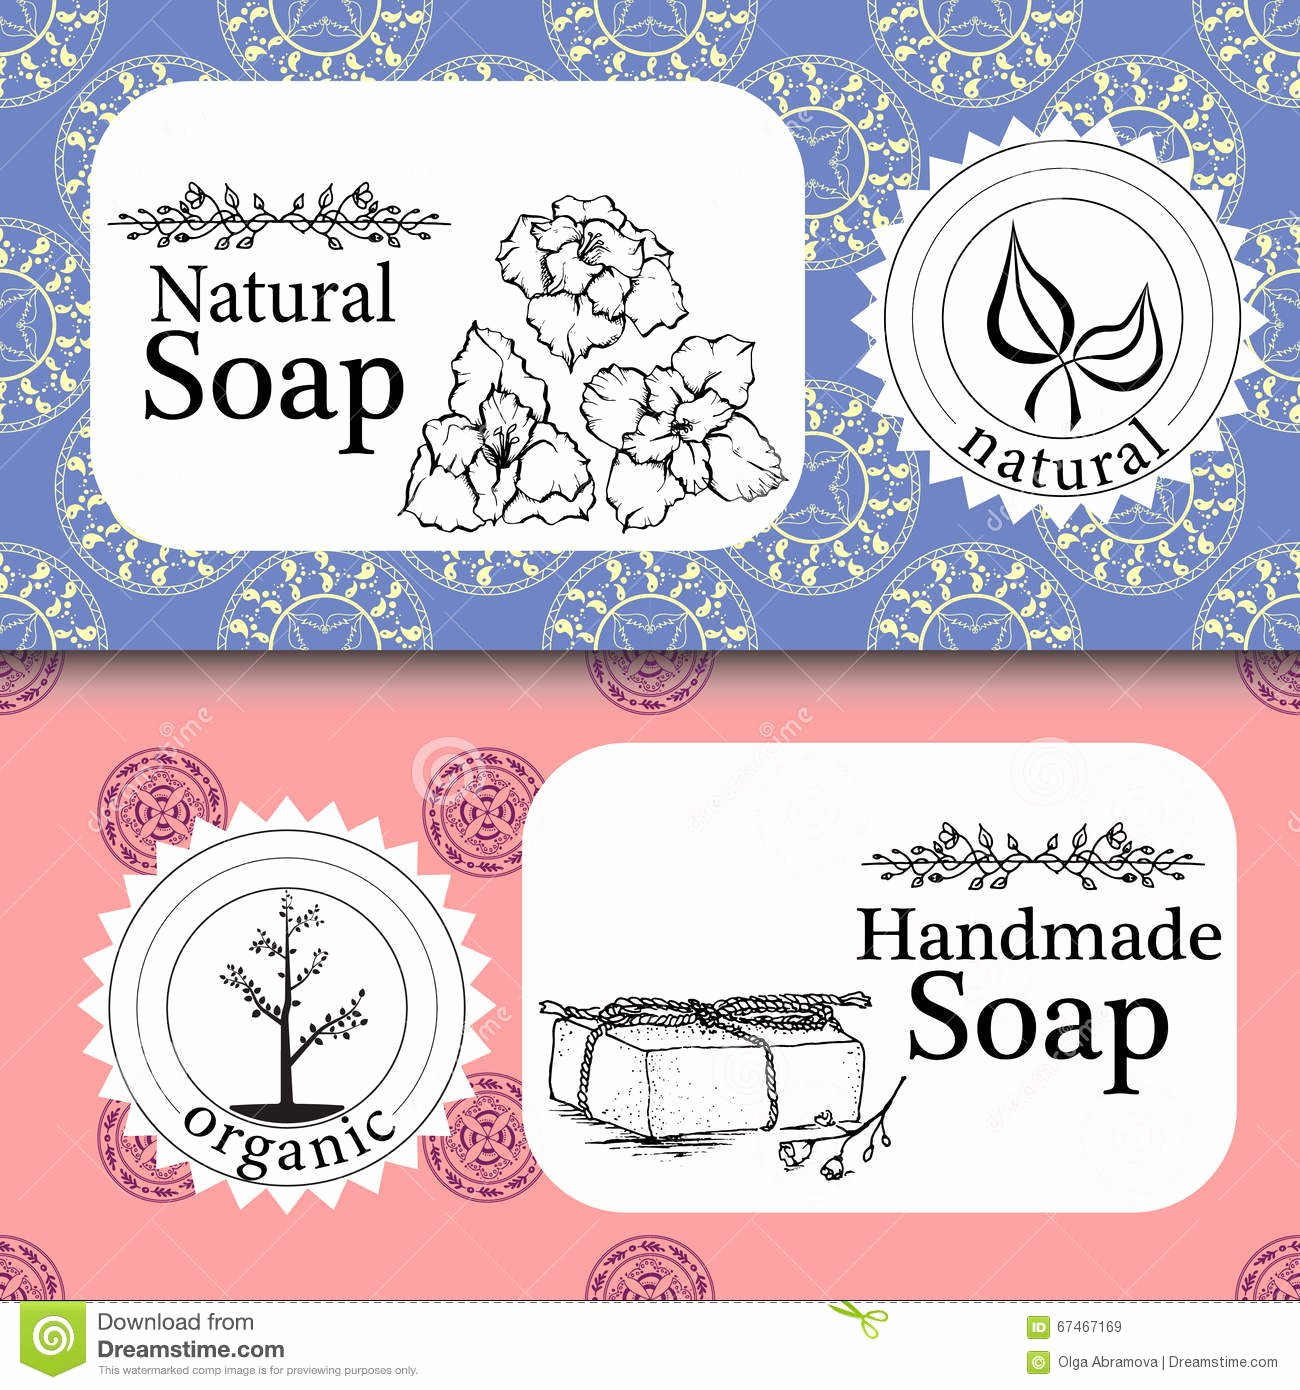 Handmade soap Label Template